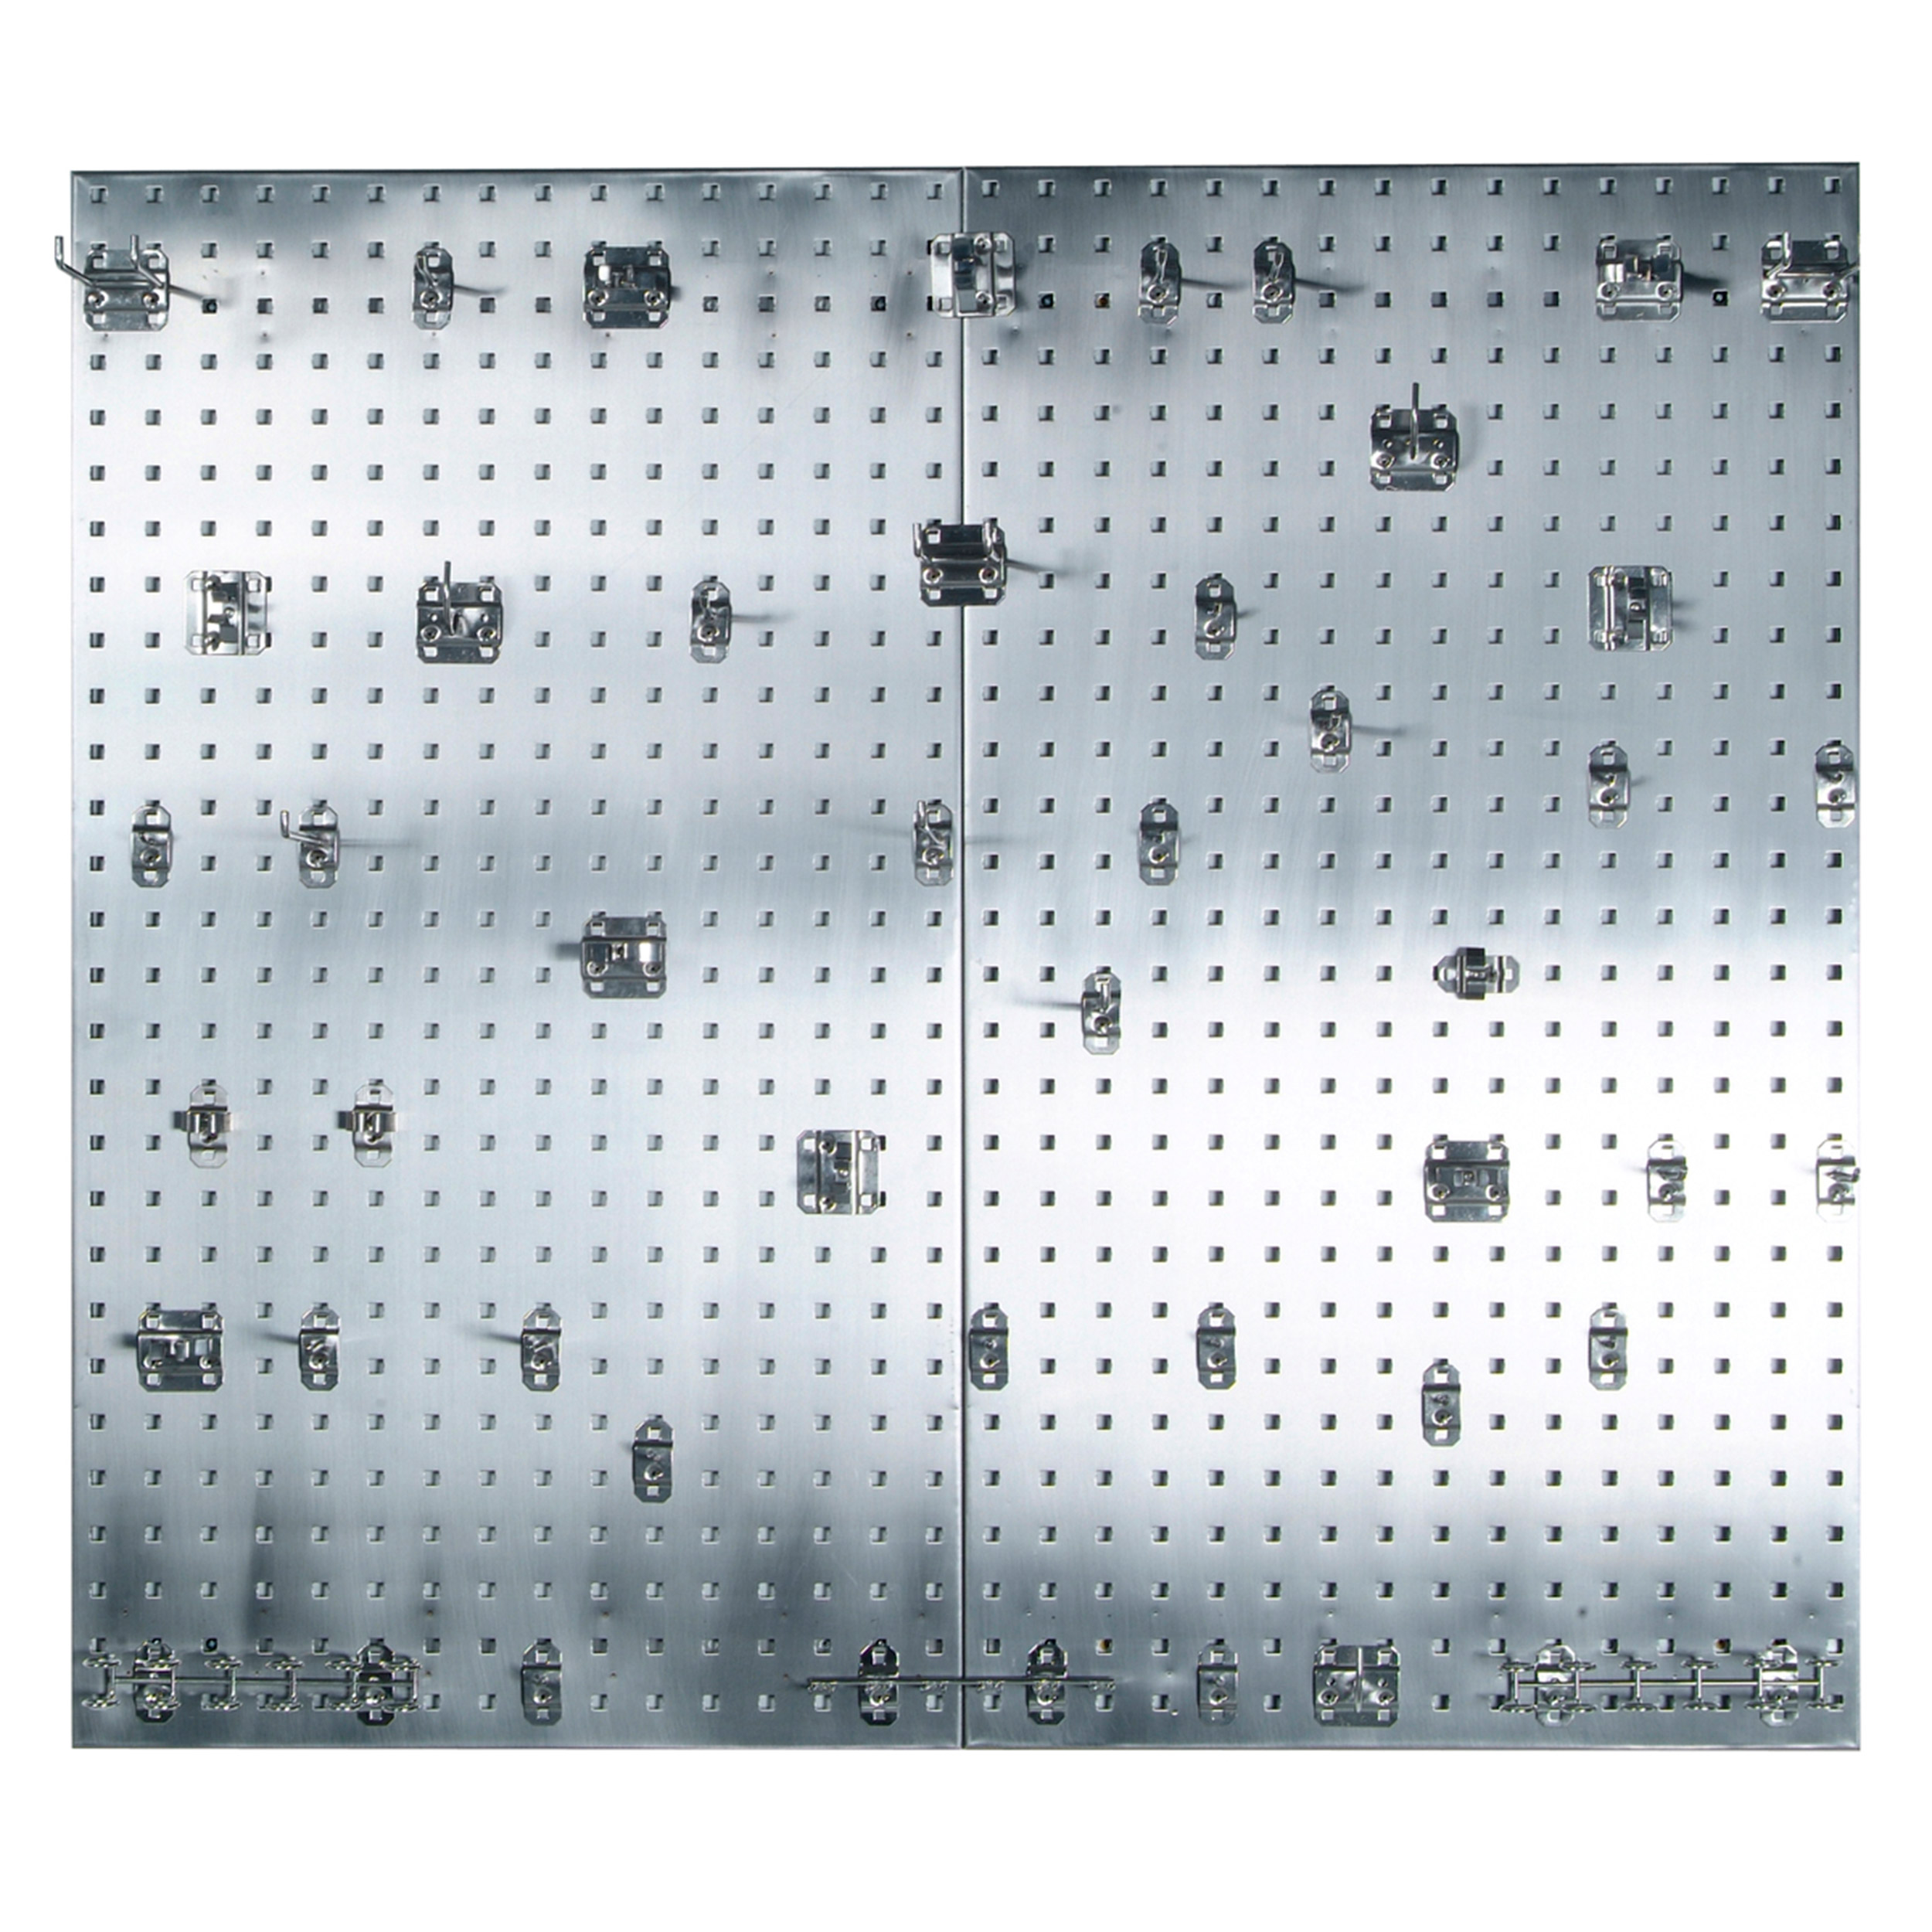 (2) 24 In. W x 42-1/2 In. H x 9/16 In. D 304 Stainless Steel Square Hole Pegboards with 45 pc. Stainless LocHook Assortm